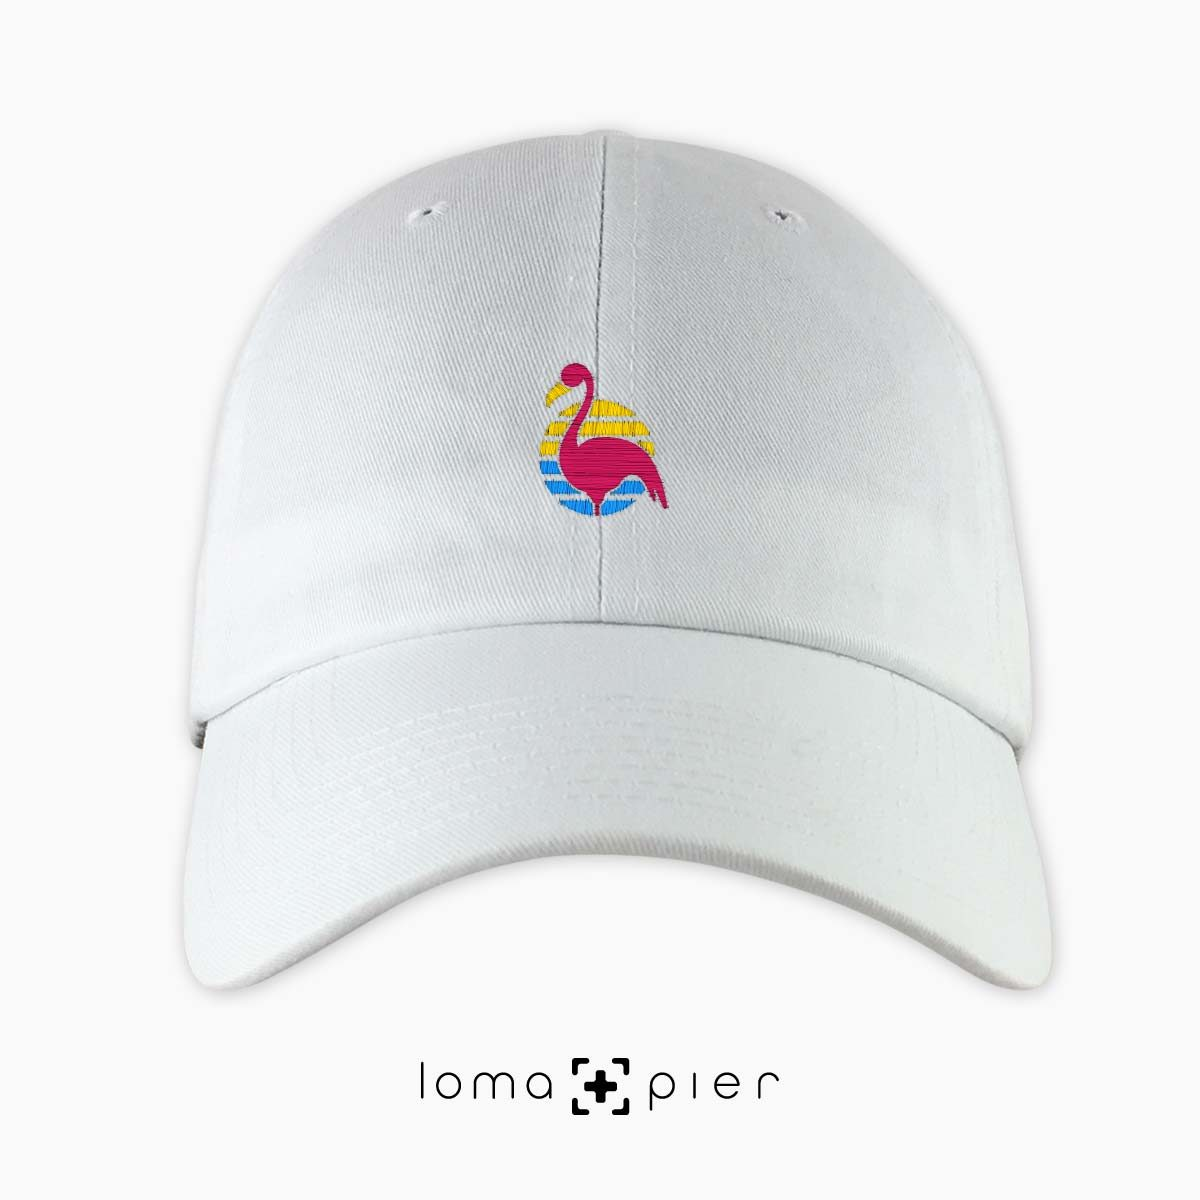 FLAMINGO icon embroidered on a white unstructured dad hat by loma+pier hat store made in the USA